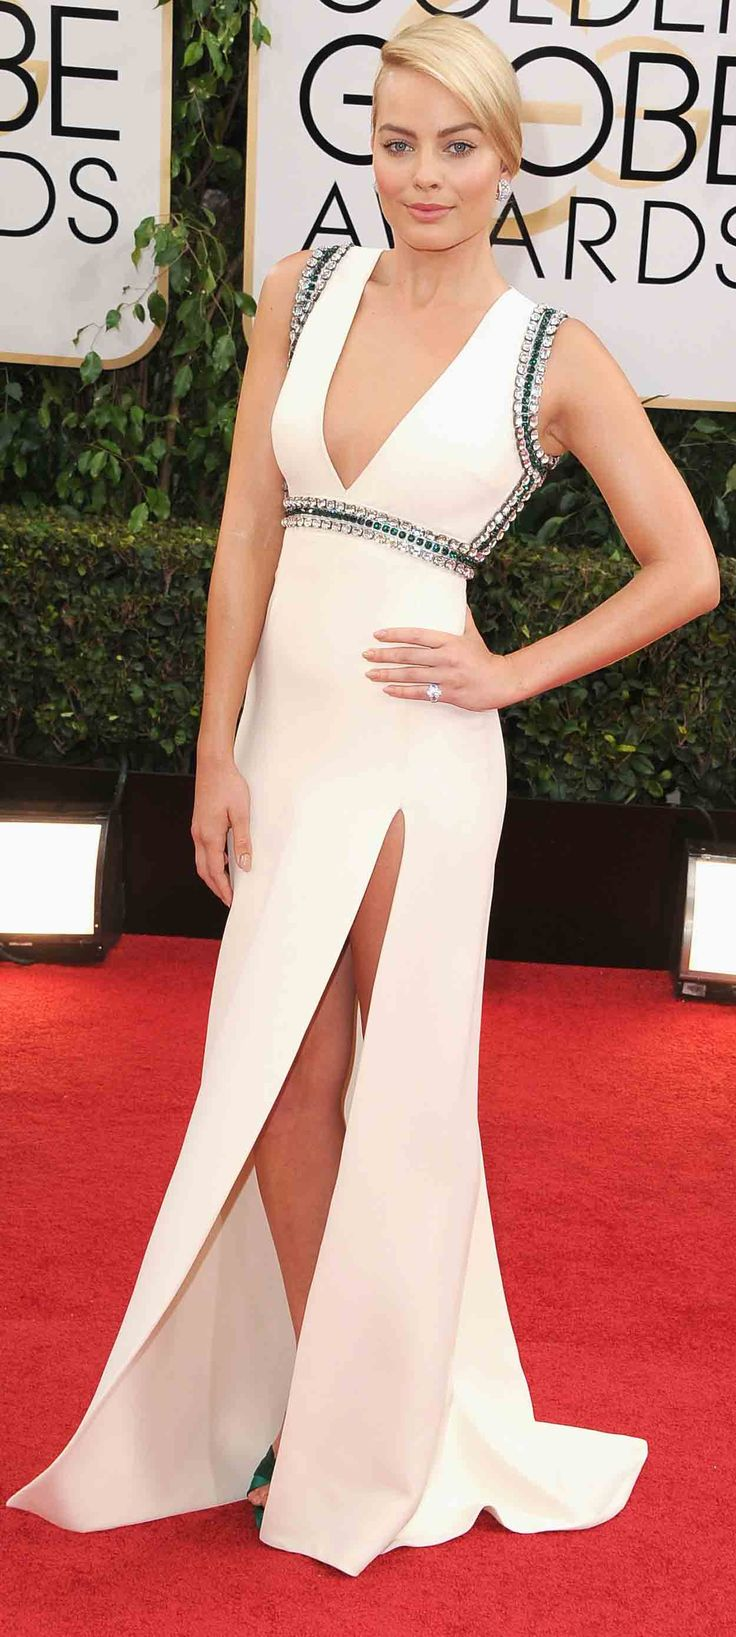 Margot Robbie went for this sexy white number on the Golden Globes red carpet